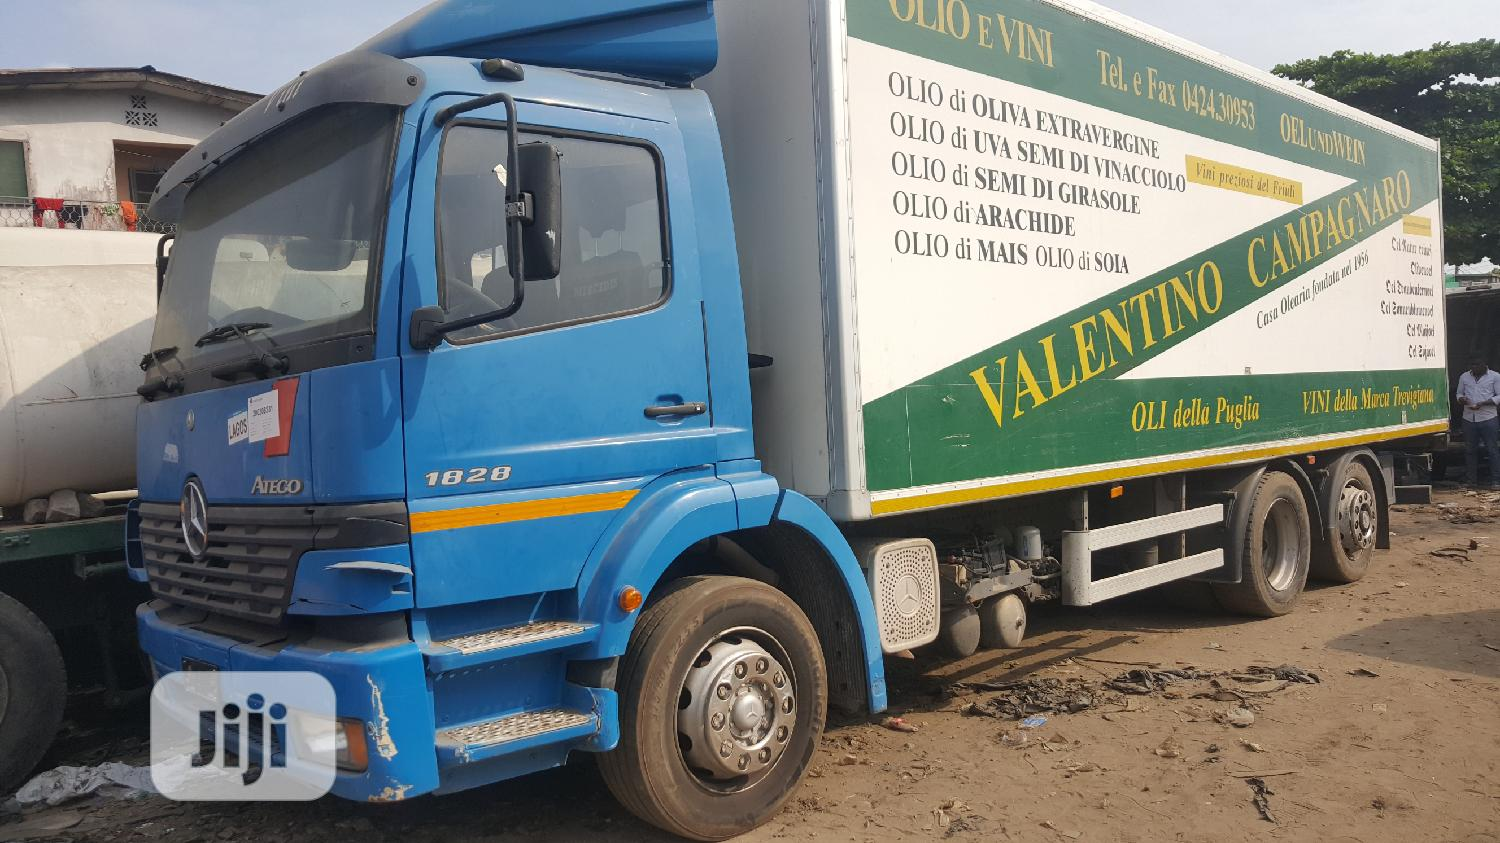 New Arrival 18 28 Mercedes Benz Eight Tyres Container Truck | Trucks & Trailers for sale in Apapa, Lagos State, Nigeria